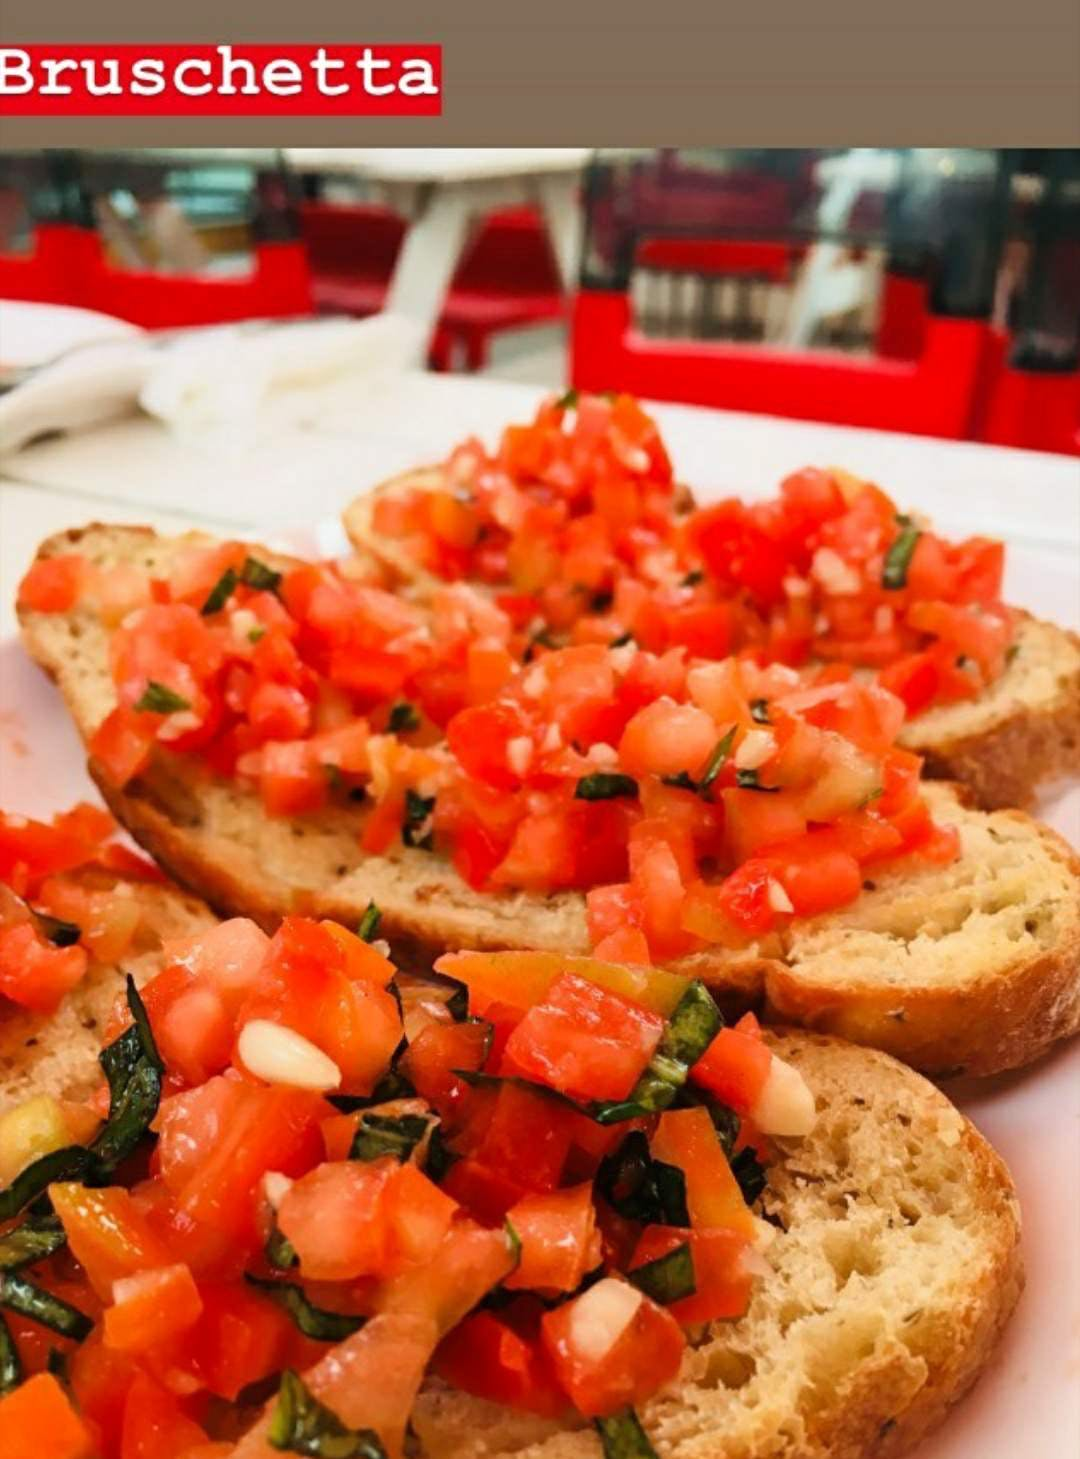 Dish,Food,Cuisine,Bruschetta,Pebre,Ingredient,appetizer,Finger food,Bread,Produce